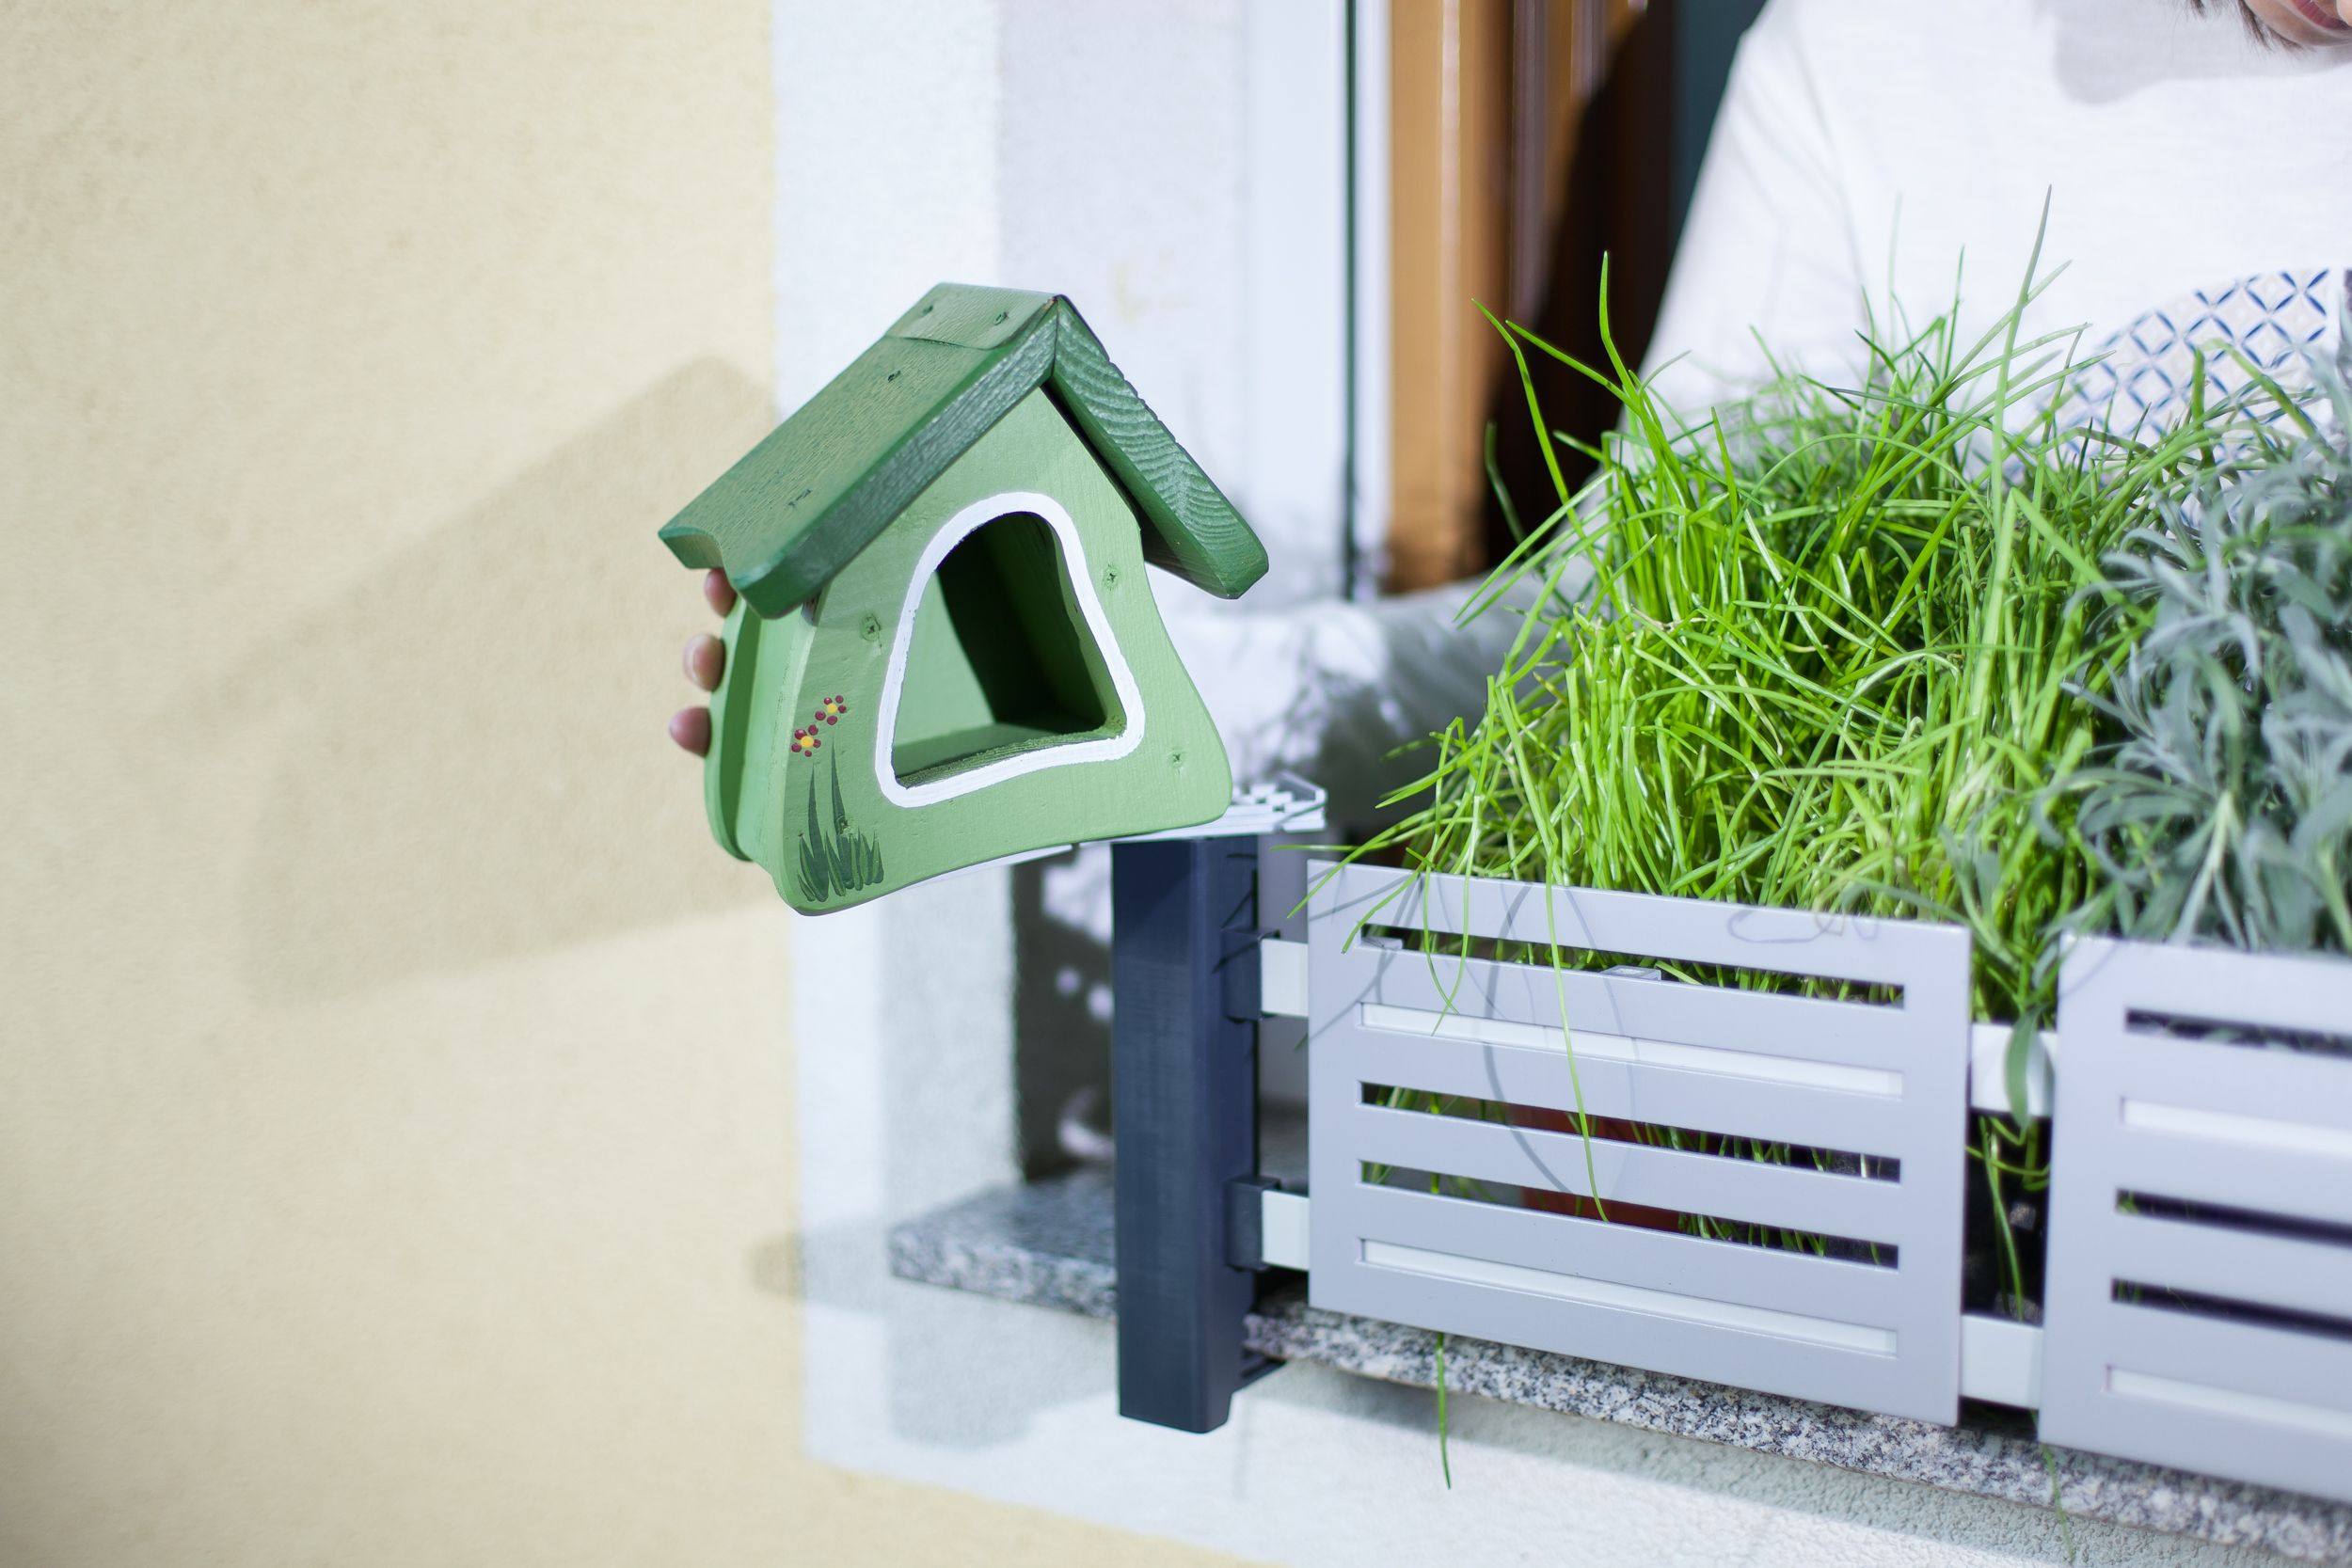 masu accessory - bird house gives animals new living space